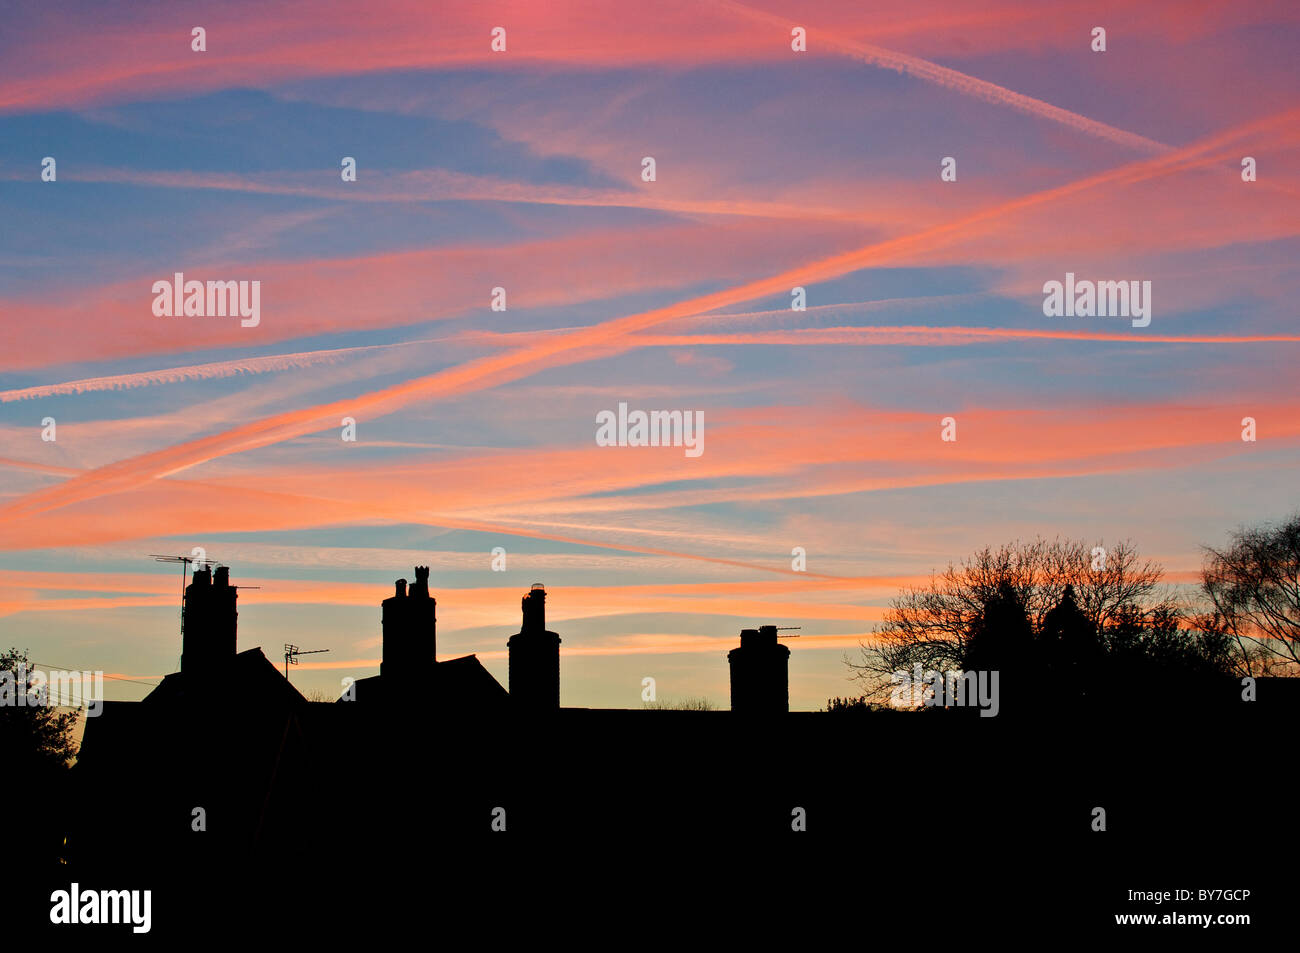 Aircraft contrails exaggerated by the setting sun and red sky above these Cheshire chimney tops - Stock Image